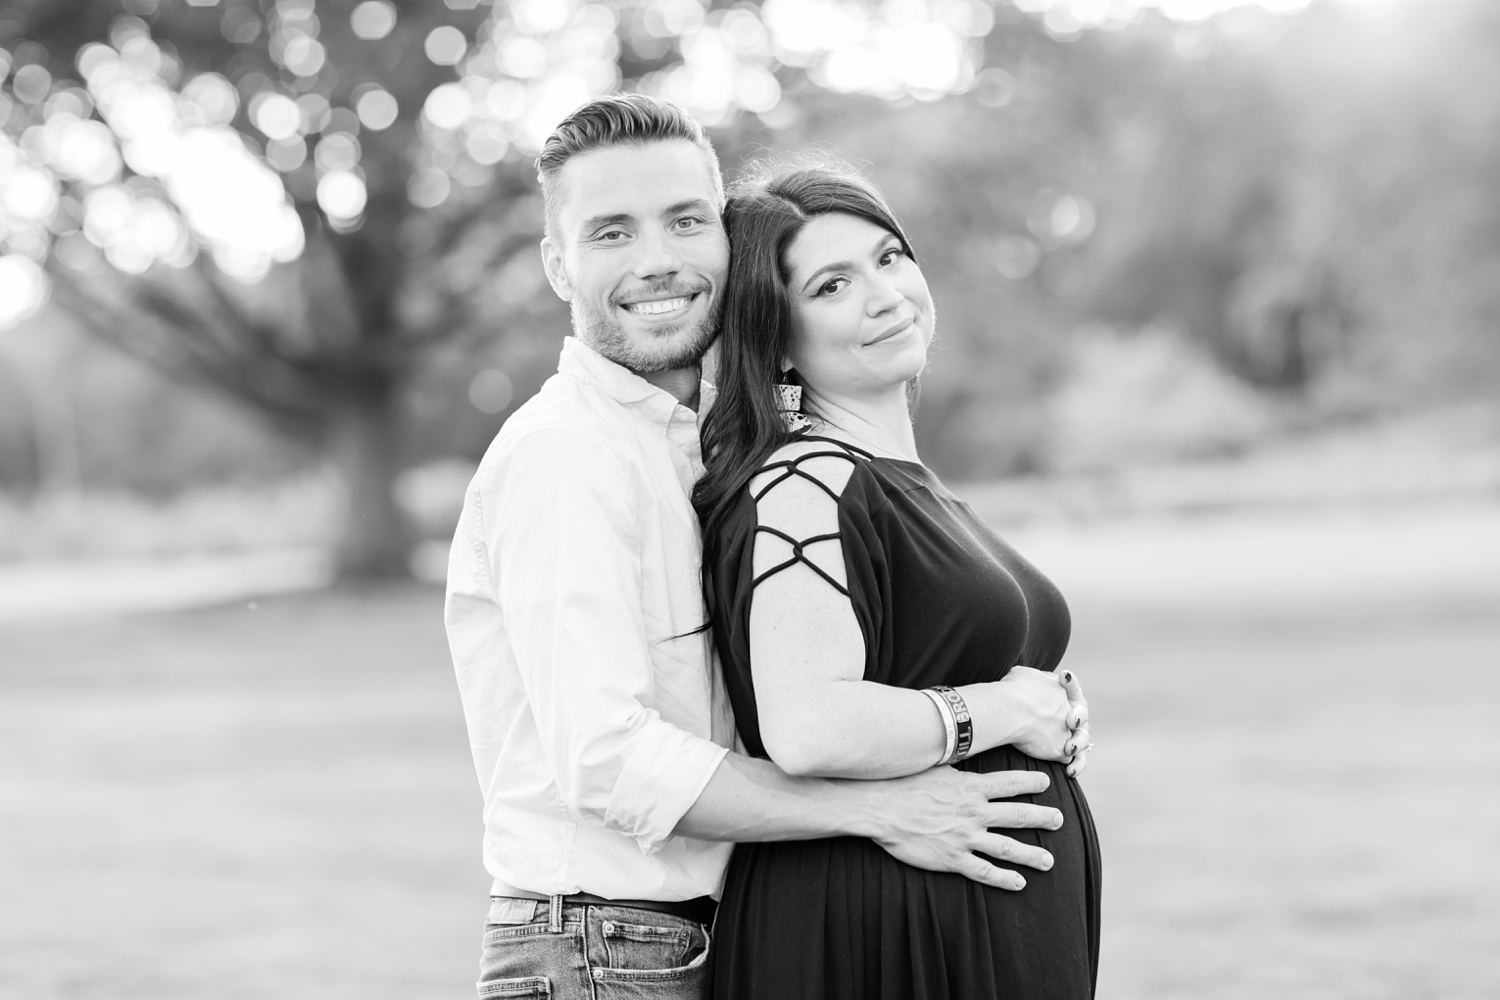 Saunders-Consroe Maternity-91_Cromwell-Valley-Park-Maryland-maternity-photographer-anna-grace-photography-photo.jpg